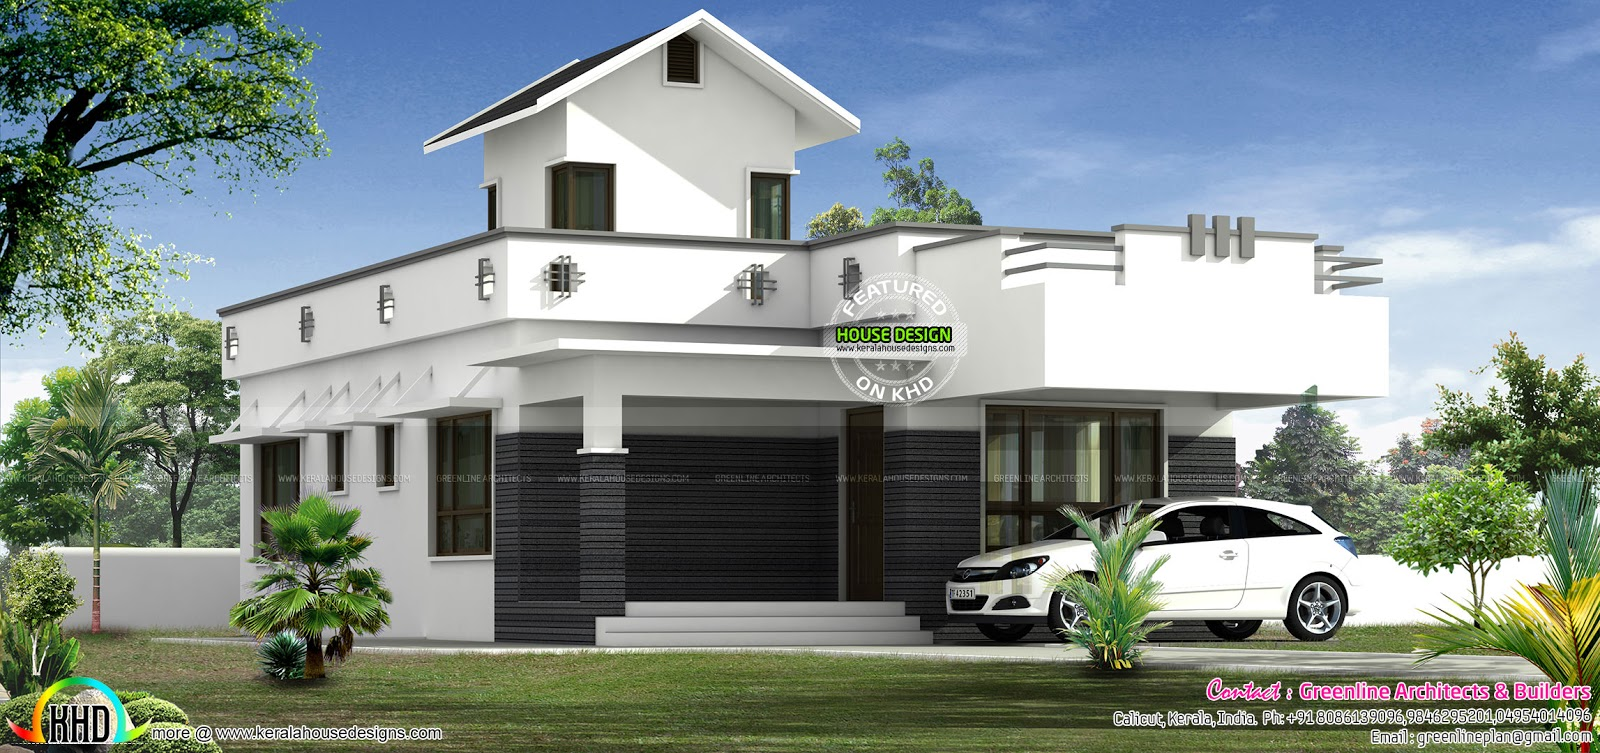 1000 sq-ft 15 lakhs budget home - Kerala home design and floor plans